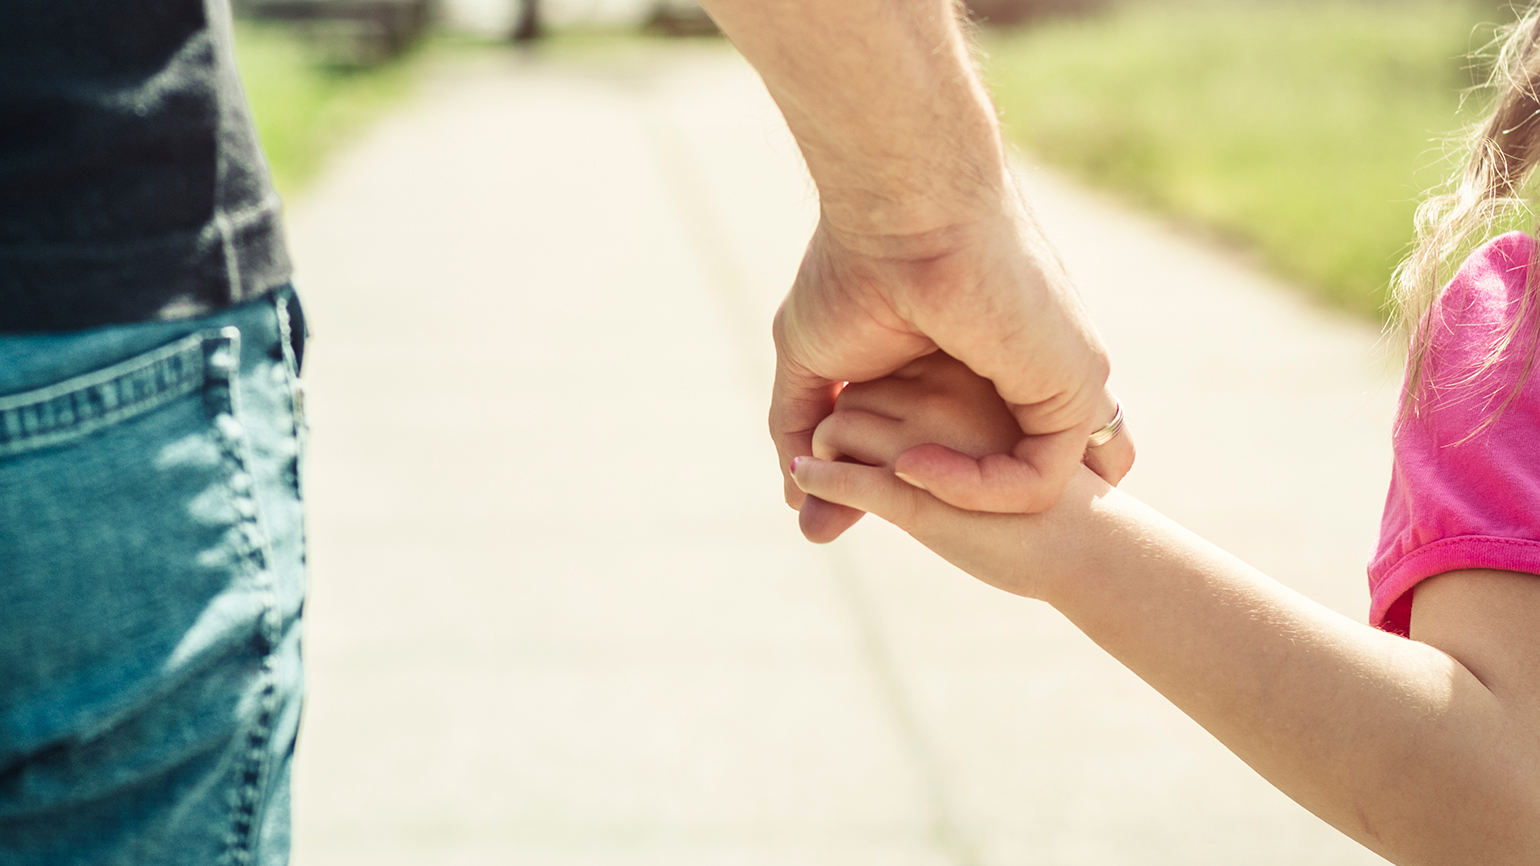 A fauther and young daughter hold hands